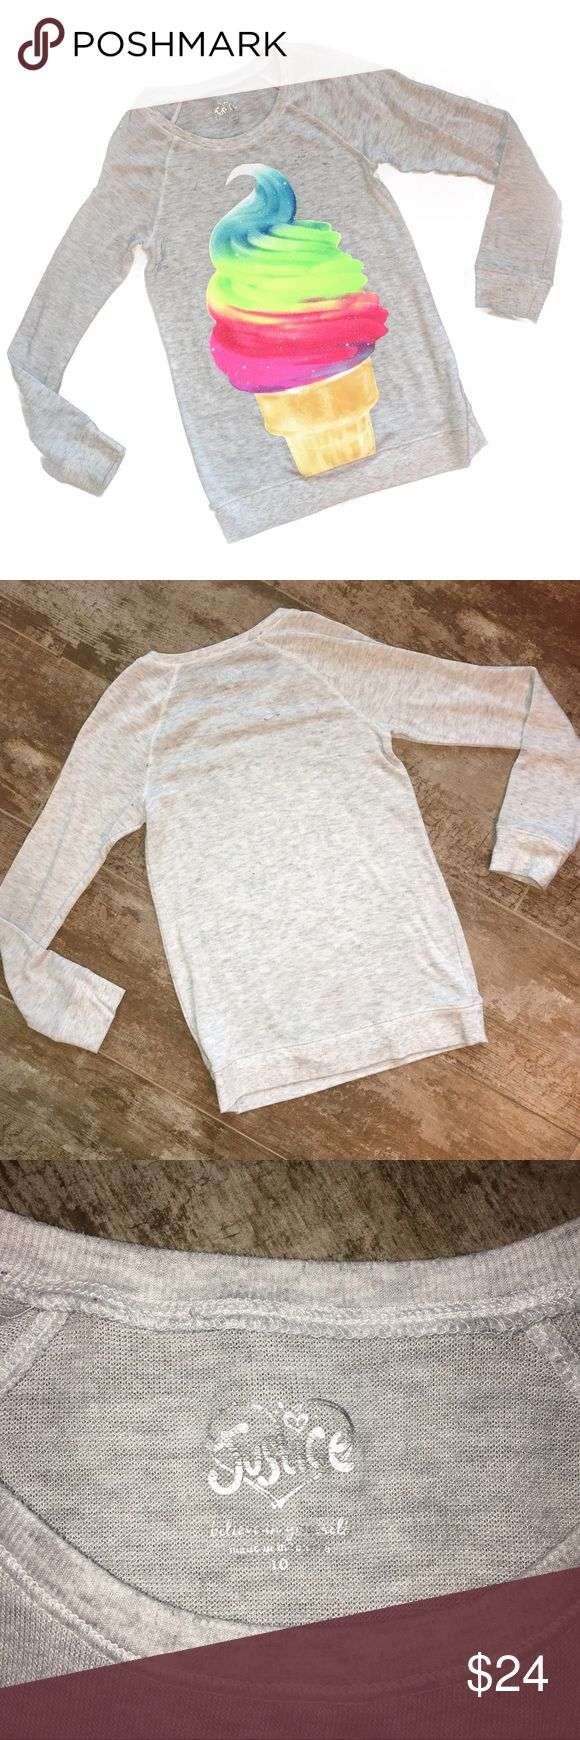 Justice Long Sleeved Sparkly Ice Cream Tee Size 10 Justice Long Sleeved Sparkly Ice Cream Tee Size 10 - *Excellent Condition* Justice Shirts & Tops Tees - Long Sleeve